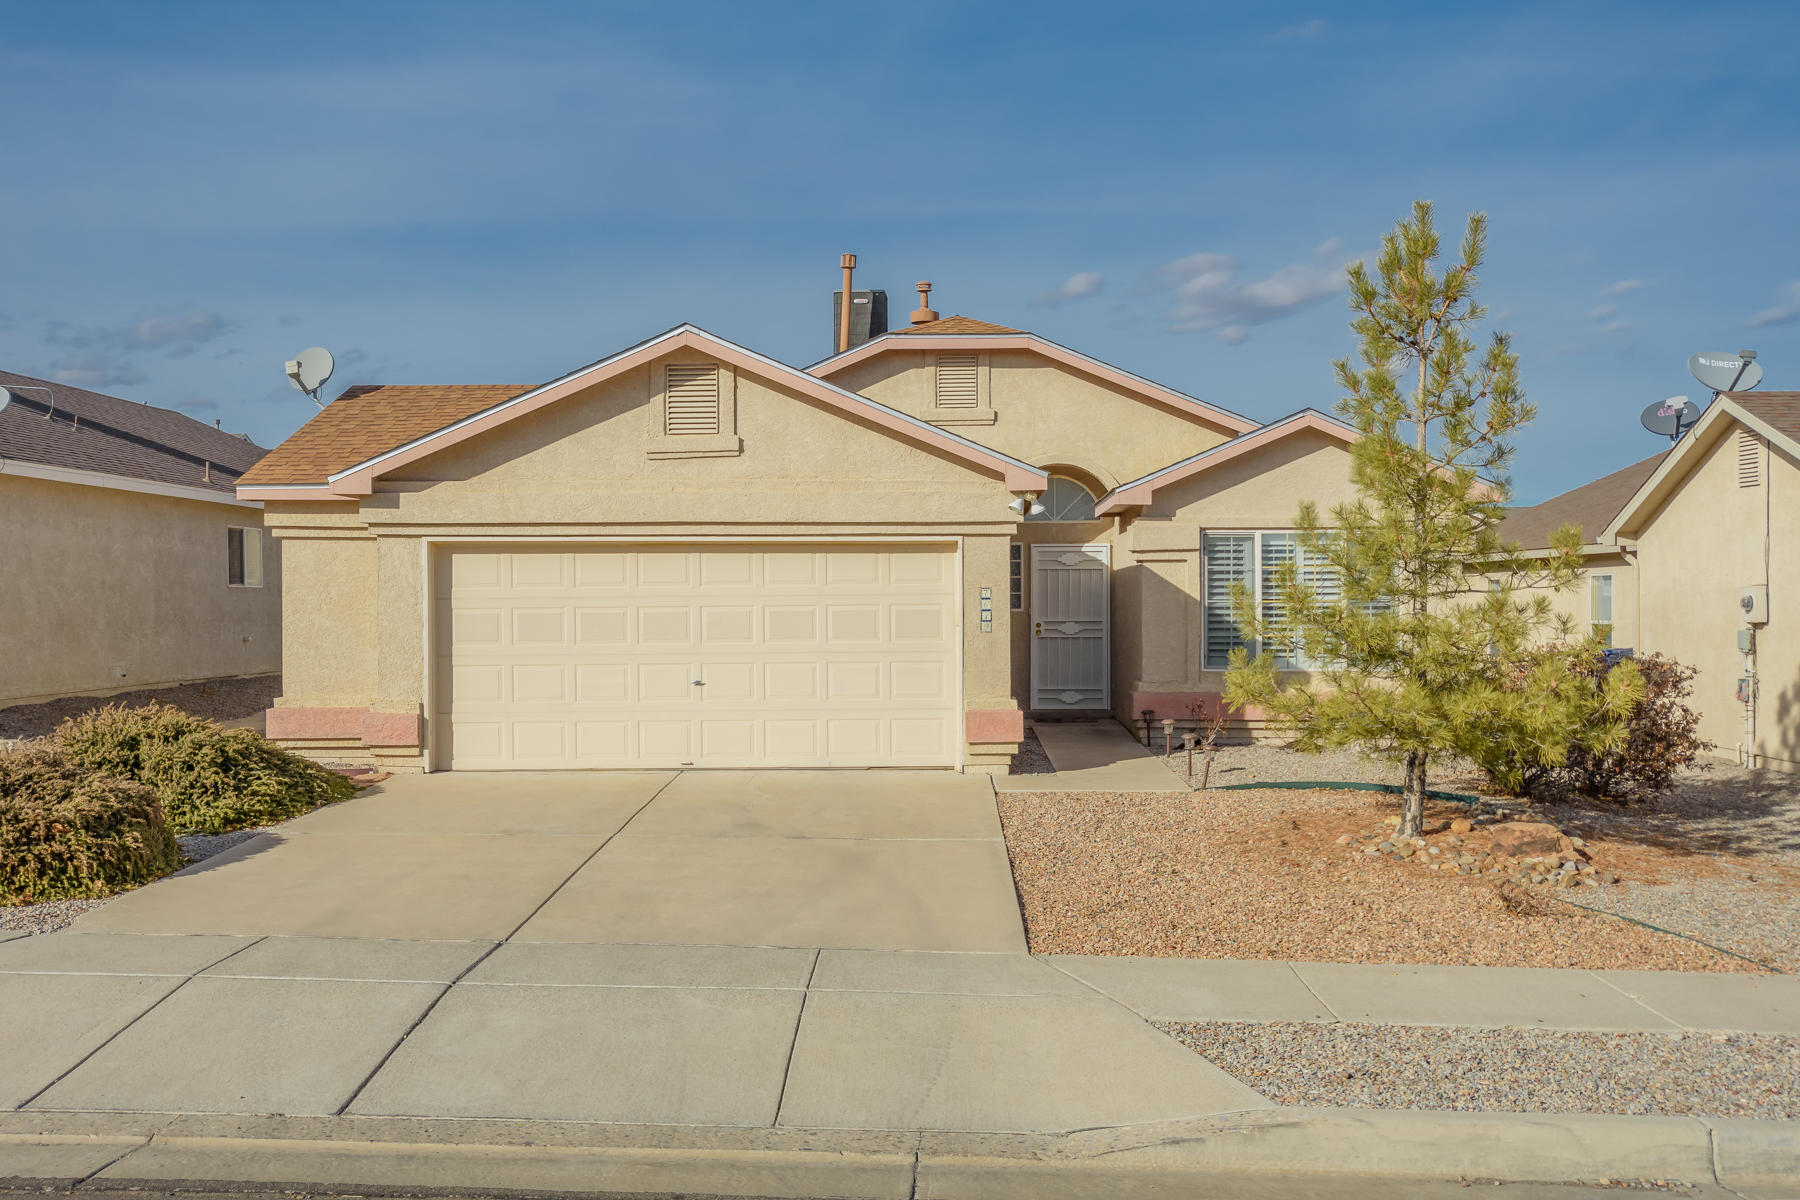 This darling Ventana Ranch home features an open concept, cathedral ceilings, a gas log fireplace and refrigerated air. Kitchen offers plenty of counter space. Plantation shutters throughout provide an aesthetic appeal while keeping the home warm during the winter and cool during the summer. Roof w/transferable warranty installed in 2019. Newer wood-look flooring. Enjoy sitting under the covered patio overlooking the wonderful backyard space complete with a few trees, shrubs and paved with beautiful flagstone. Don't miss out on this Home Sweet Home!